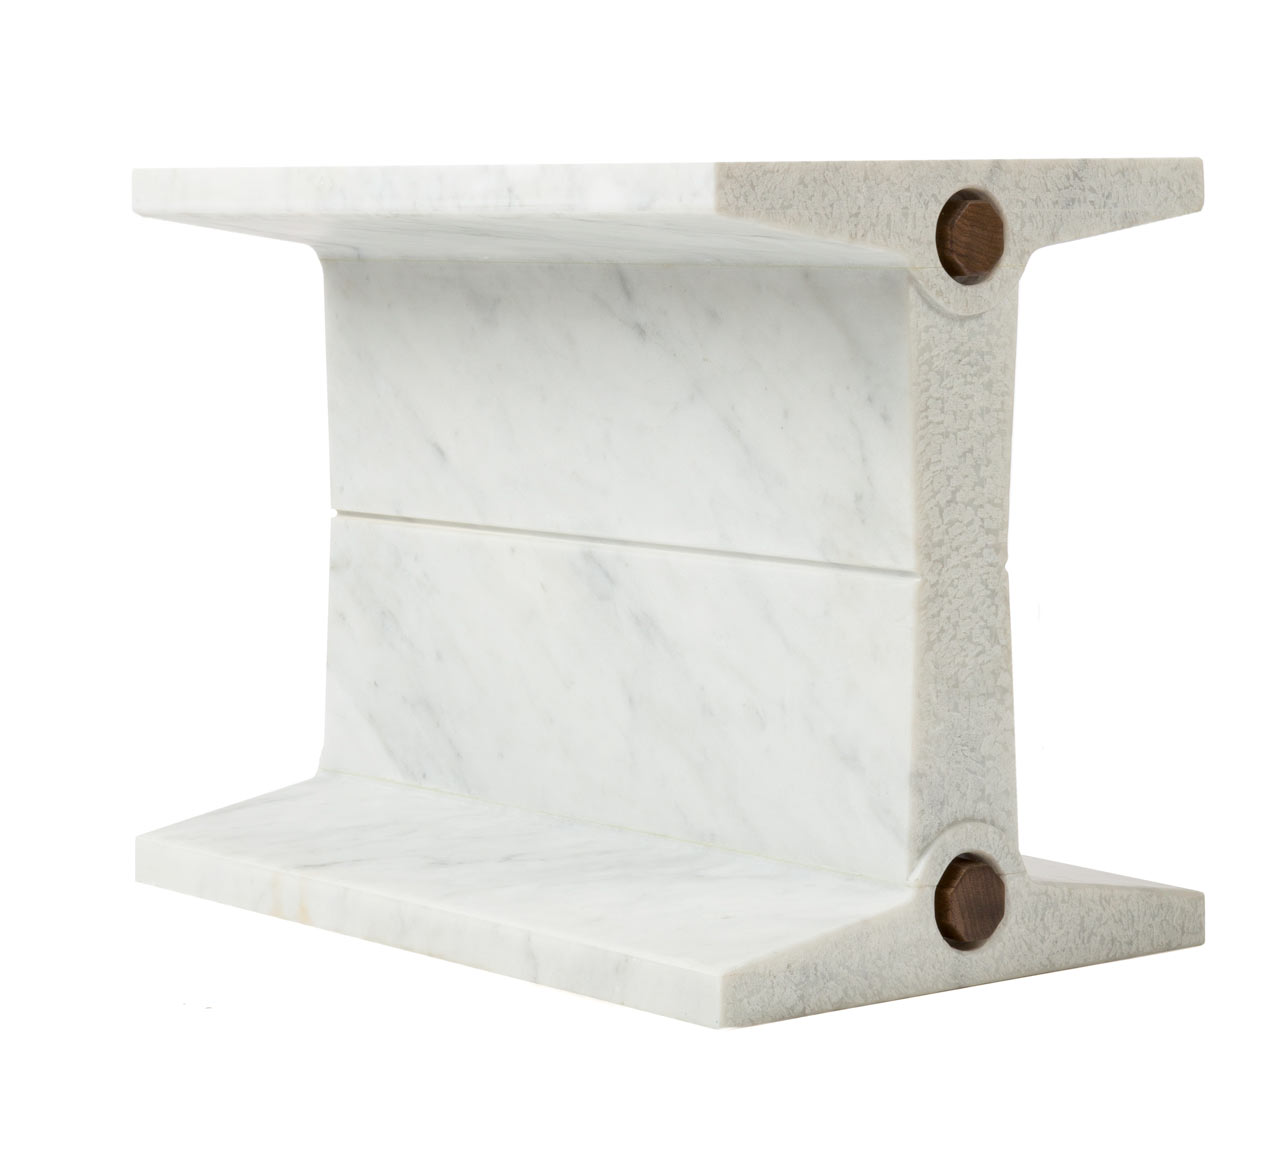 Why-Not-Bespoke-Furniture-18-Marble-I-beam